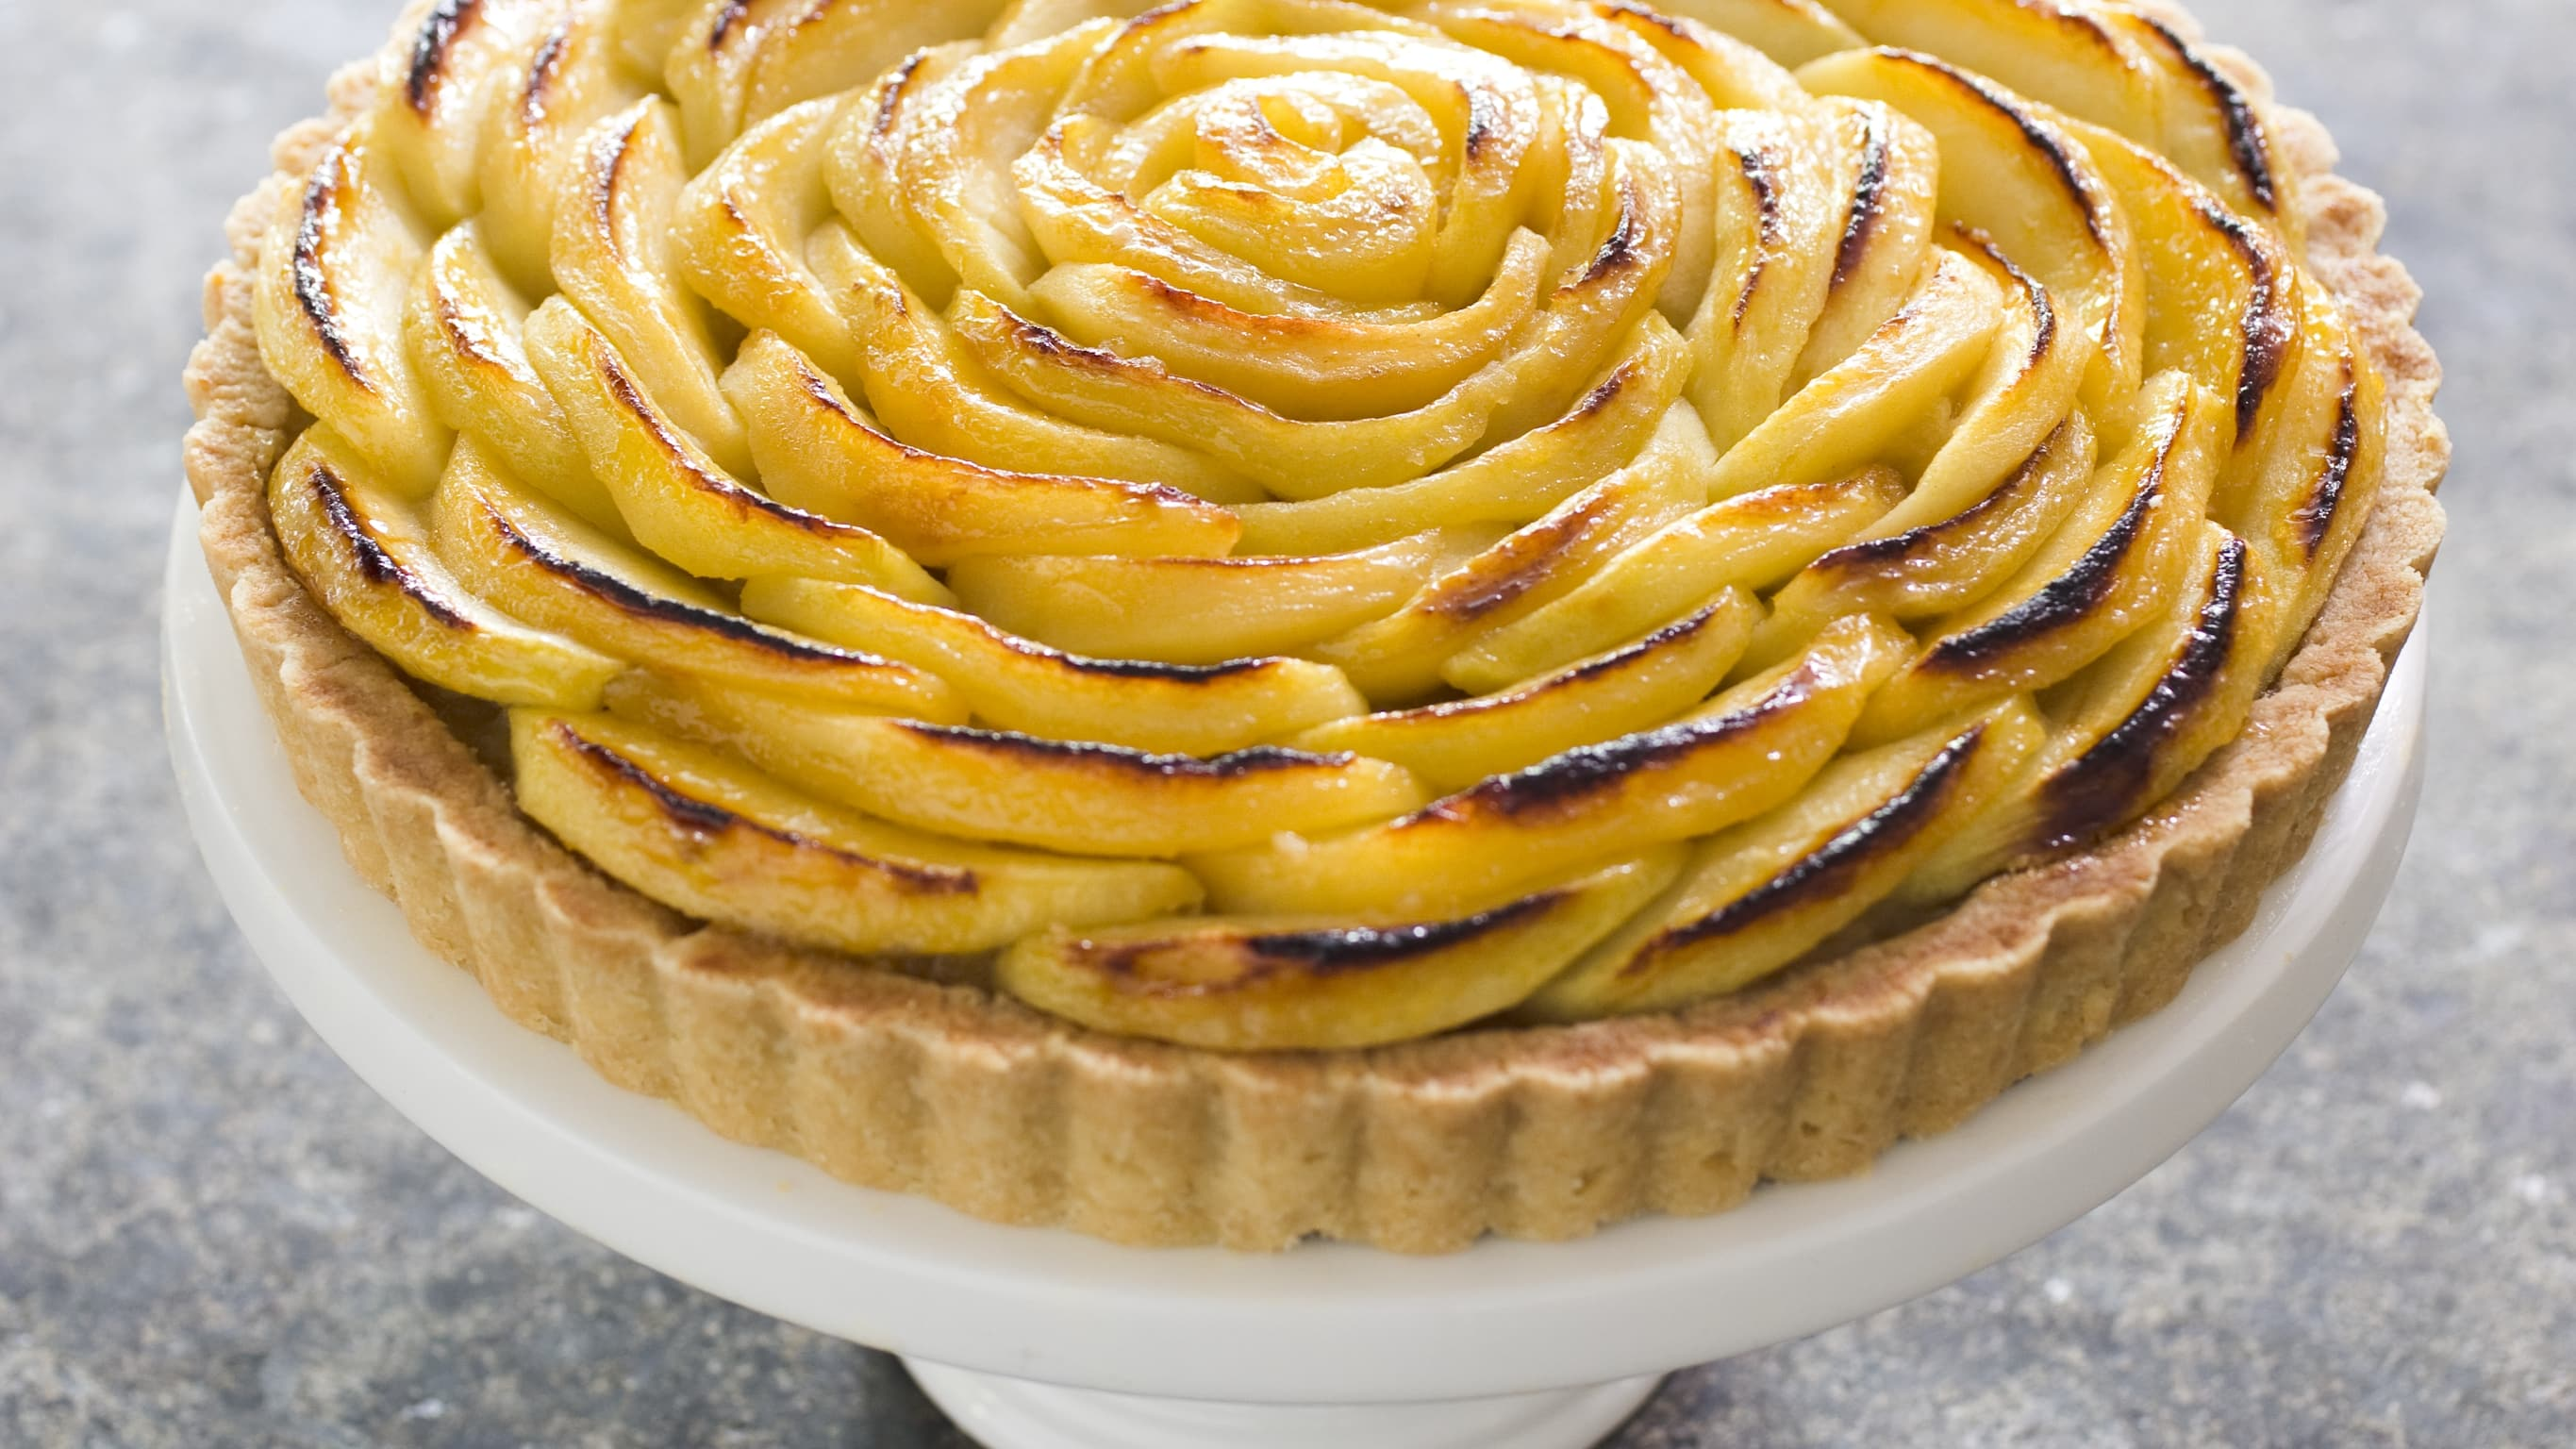 3 Ways to Use Those Freshly-Picked Apples